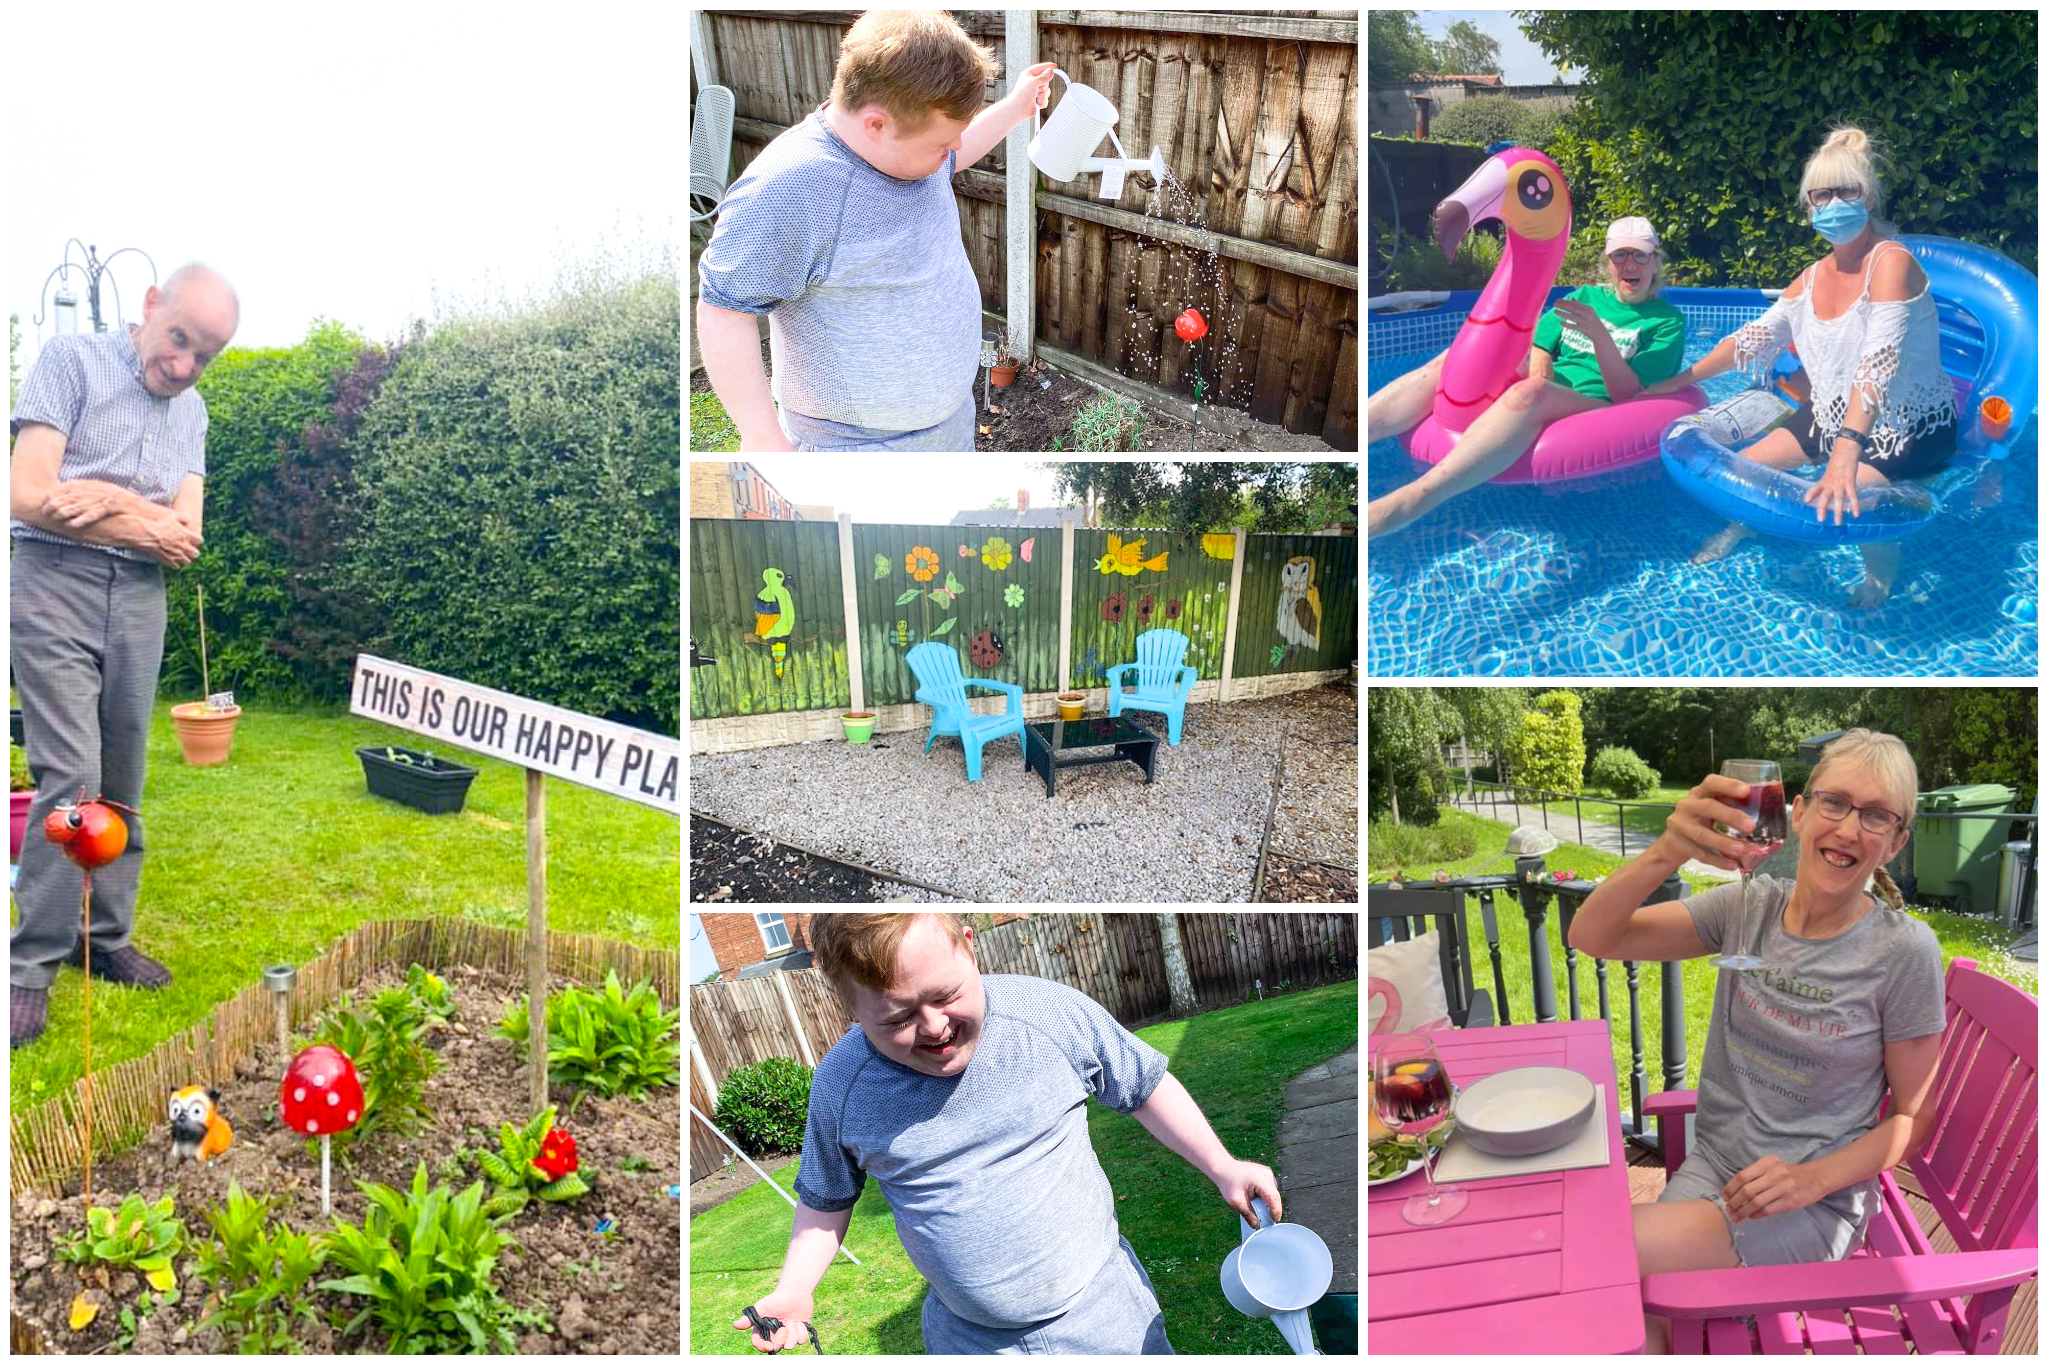 Throwing pool parties, creating art and decorations, and growing fruits and vegetables are just some of the ways people we support keep active in their gardens.